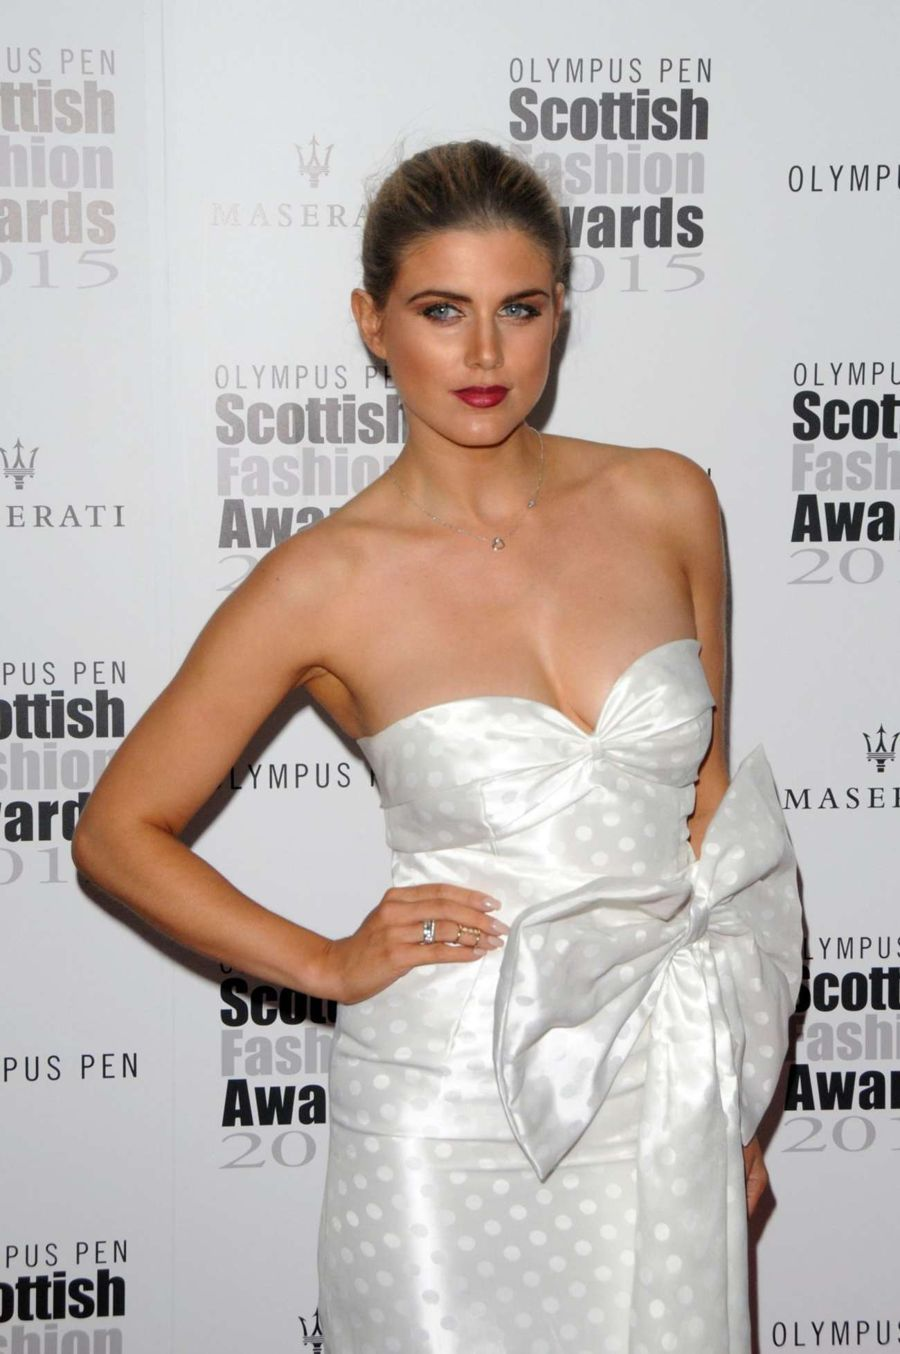 Ashley James - Scottish Fashion Awards 2015 in London